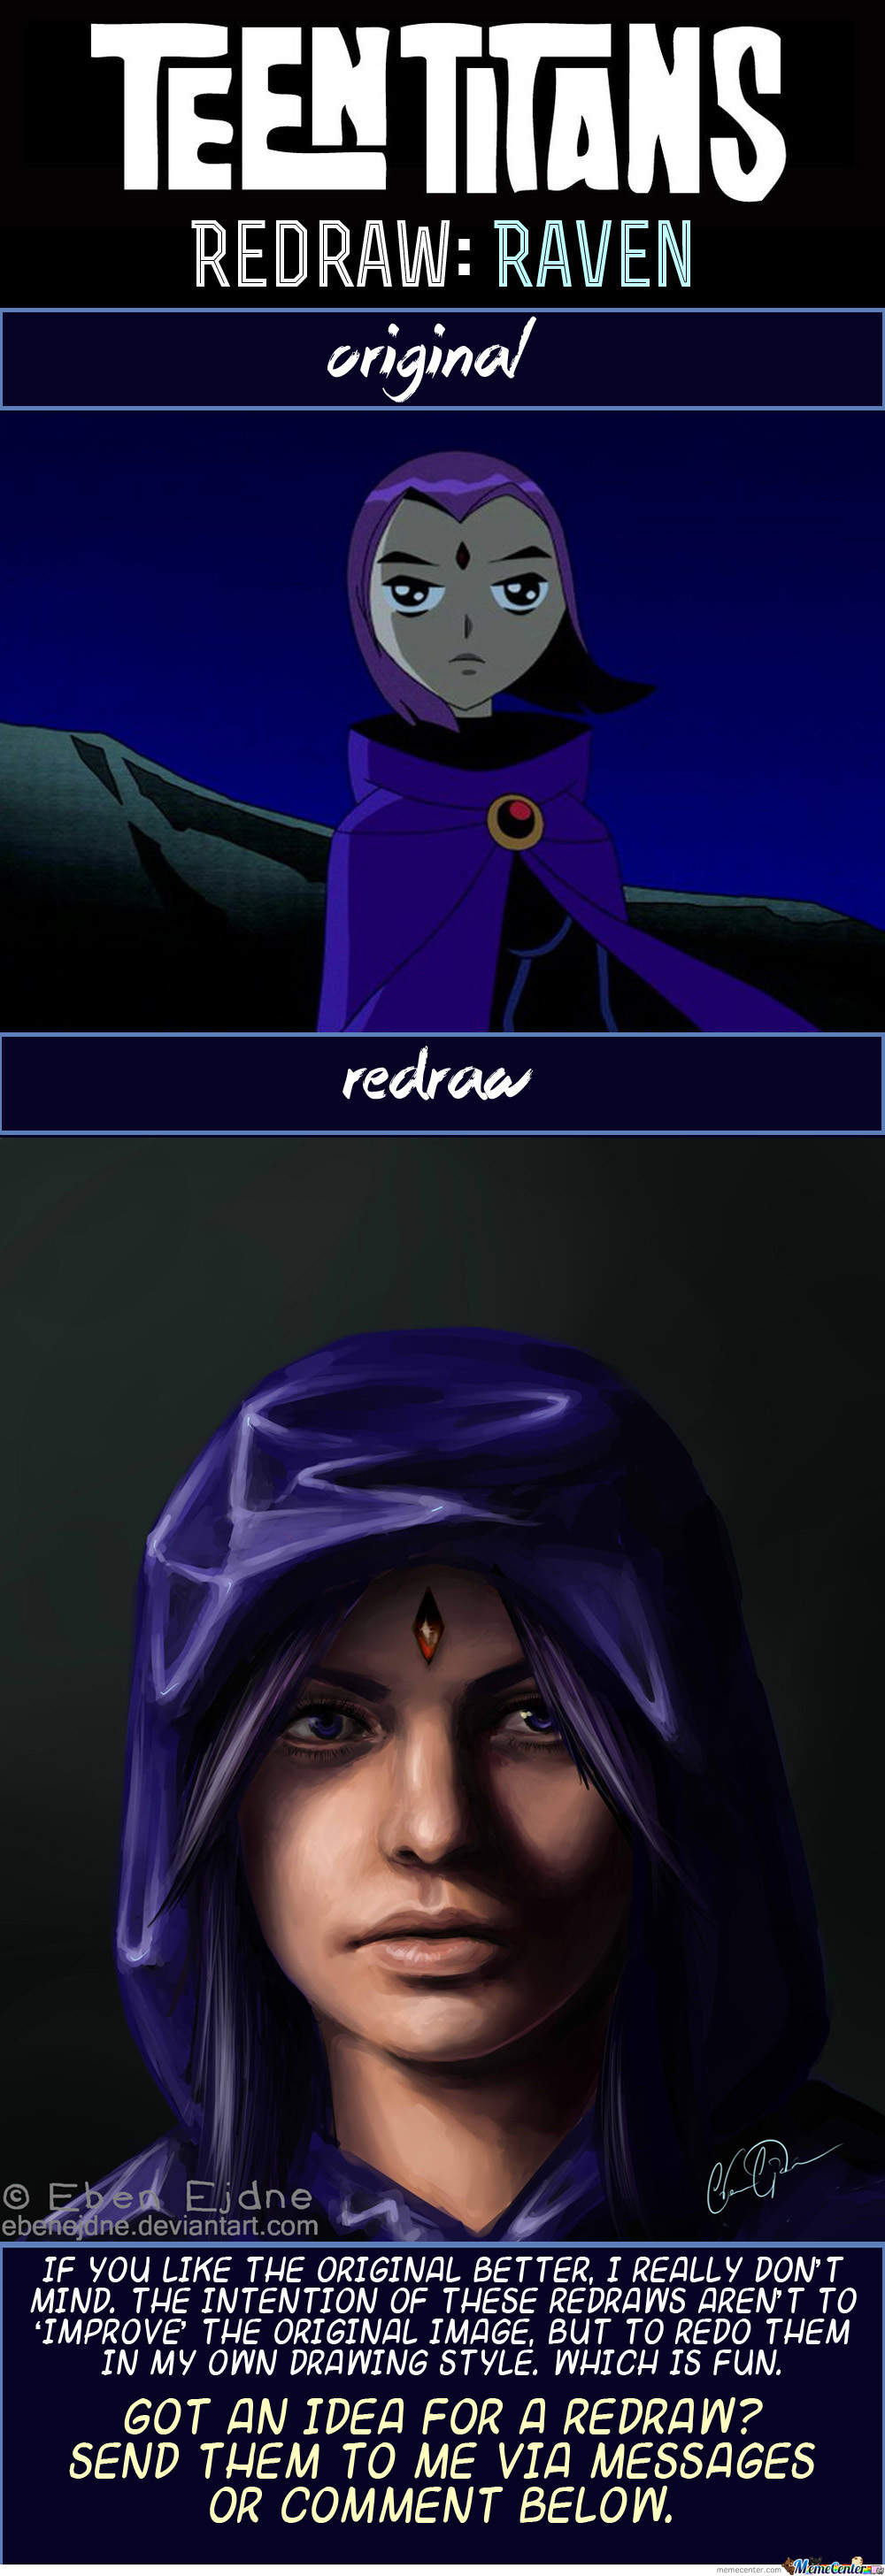 Redraw: Raven (From Teen Titans)